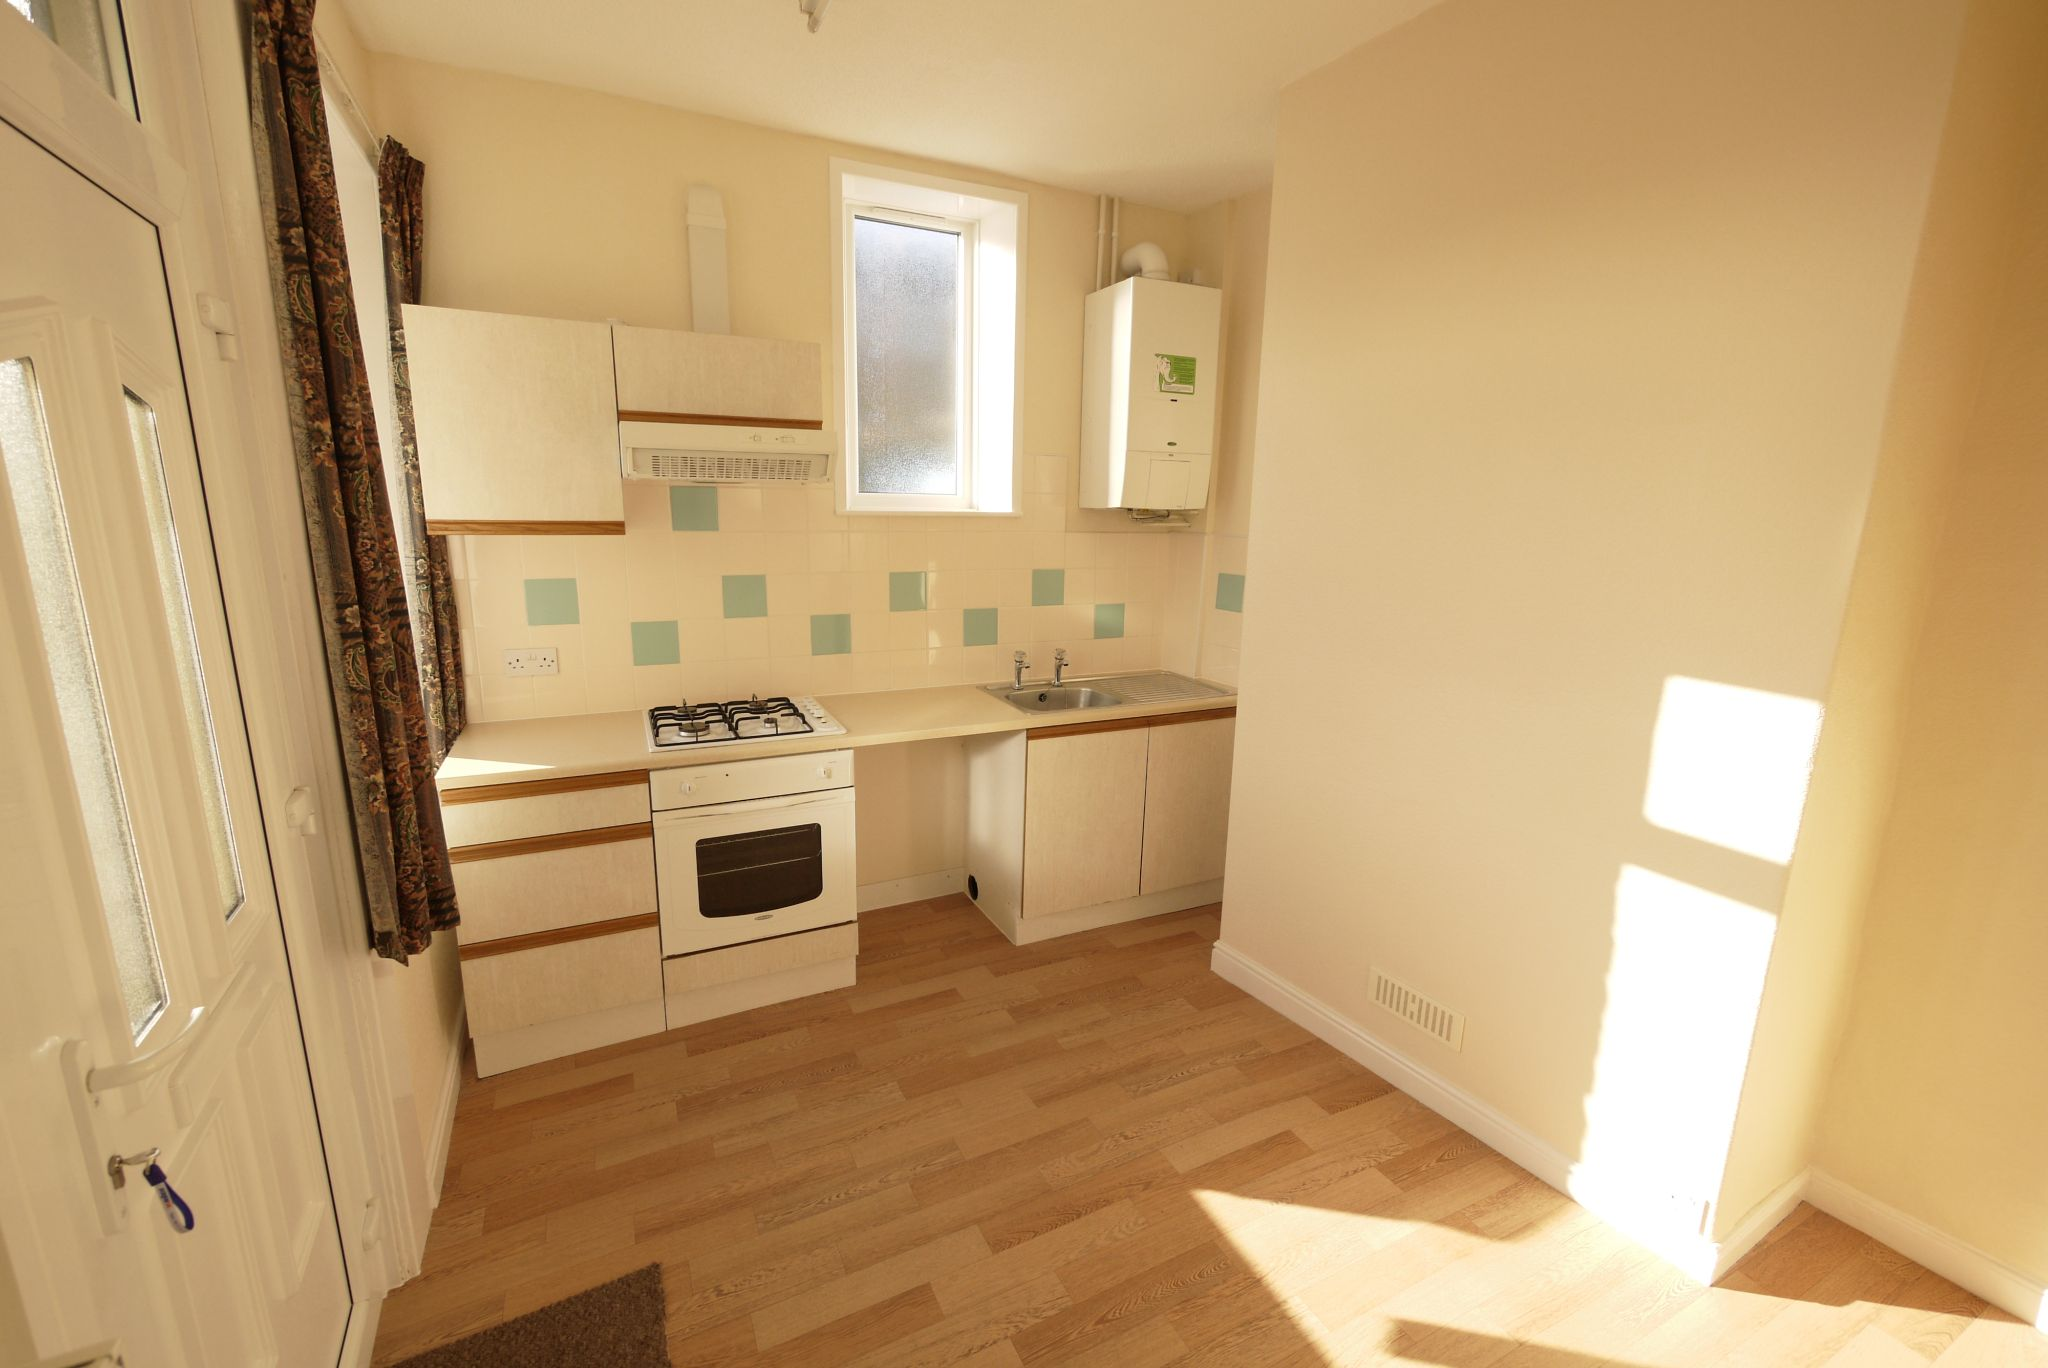 1 bedroom mid terraced house Let in Brighouse - Kitchen.